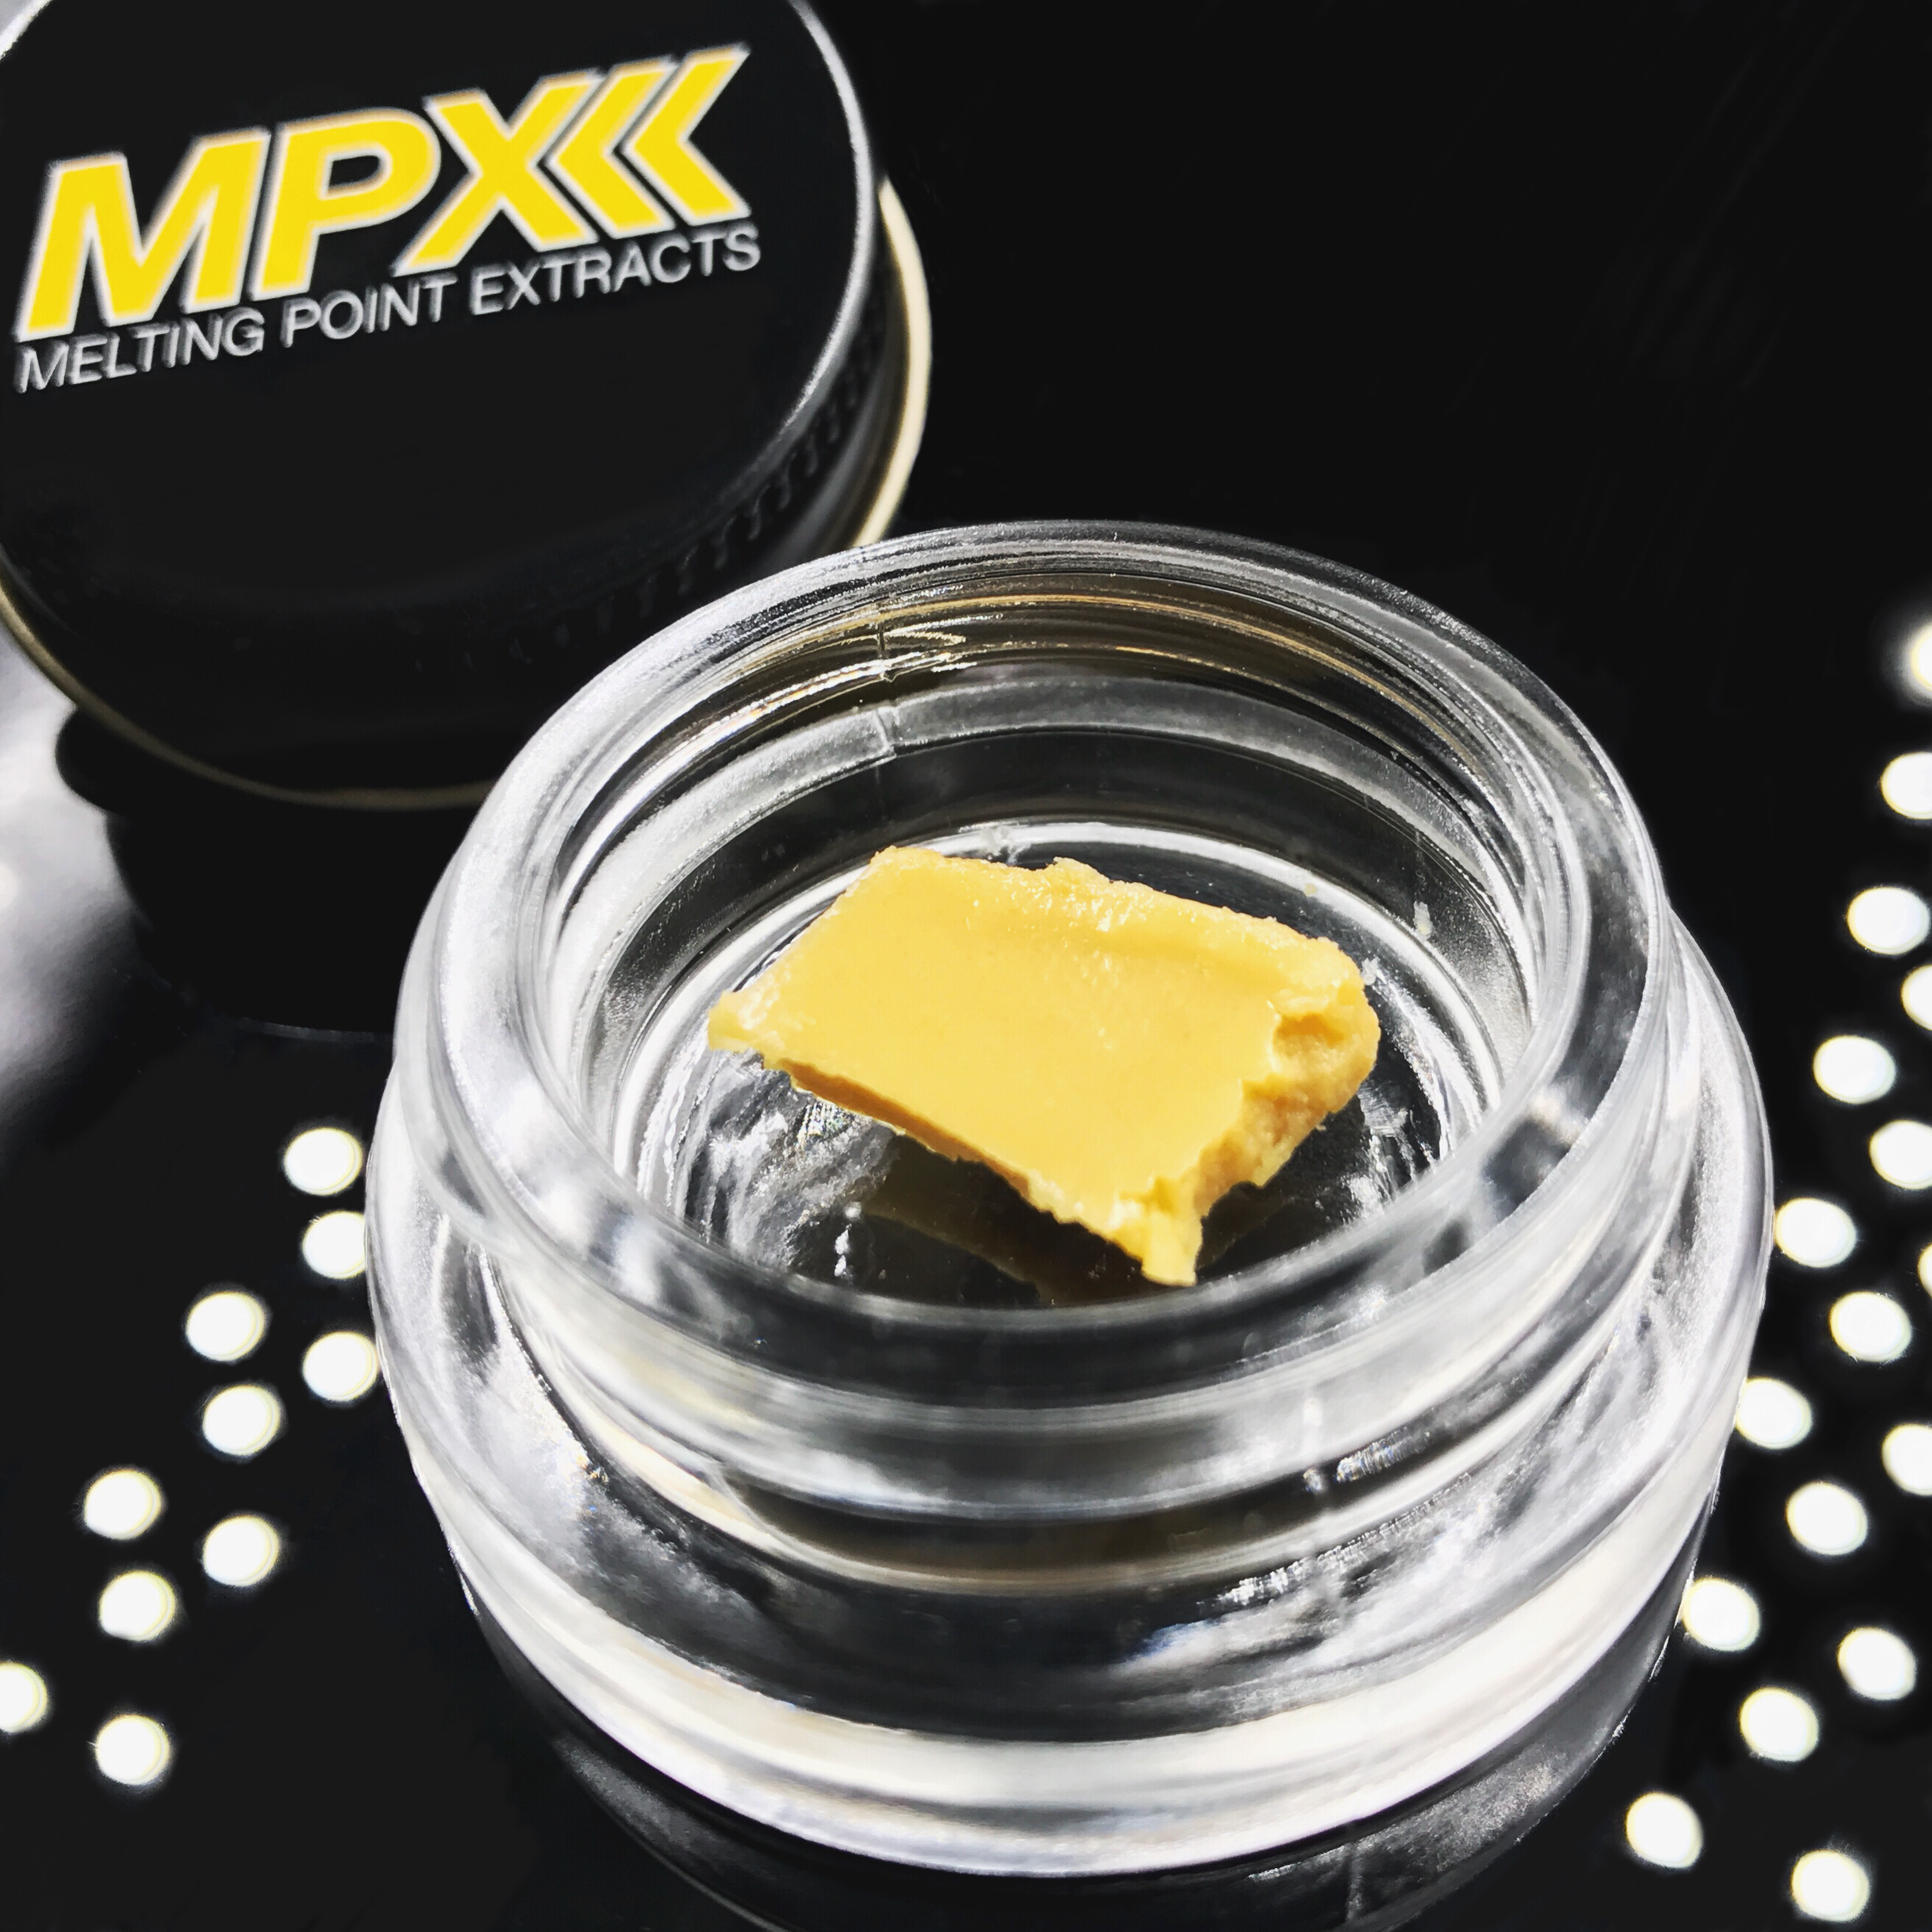 melting point extracts wax